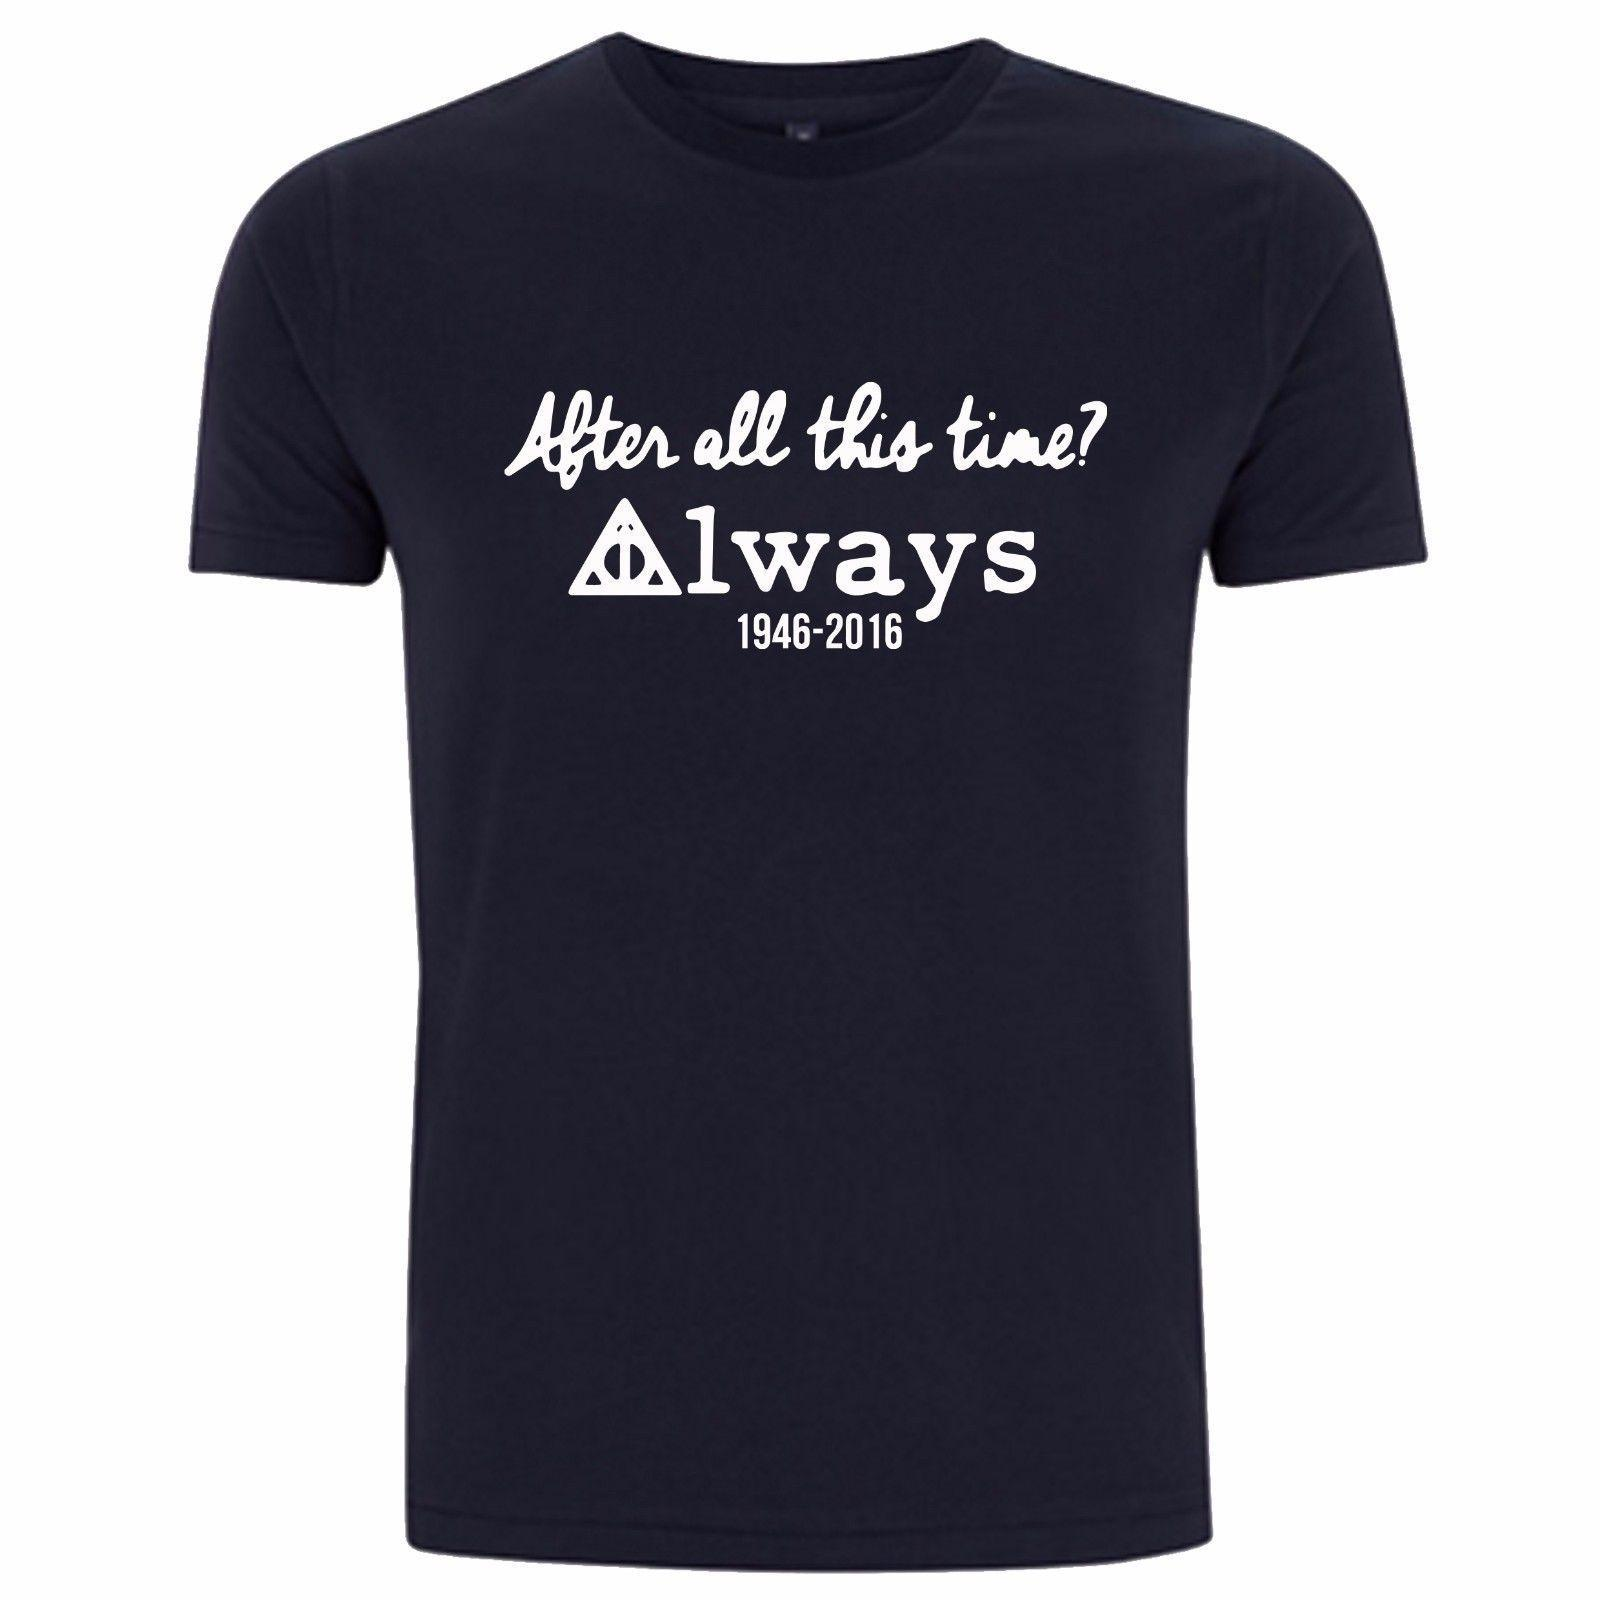 T-SHIRT DE HARRY POTTER - TRIBUTO DE ALAN RICKMAN T-SHIRT DEATHLY DO TREVO DE JACK RACHADOR